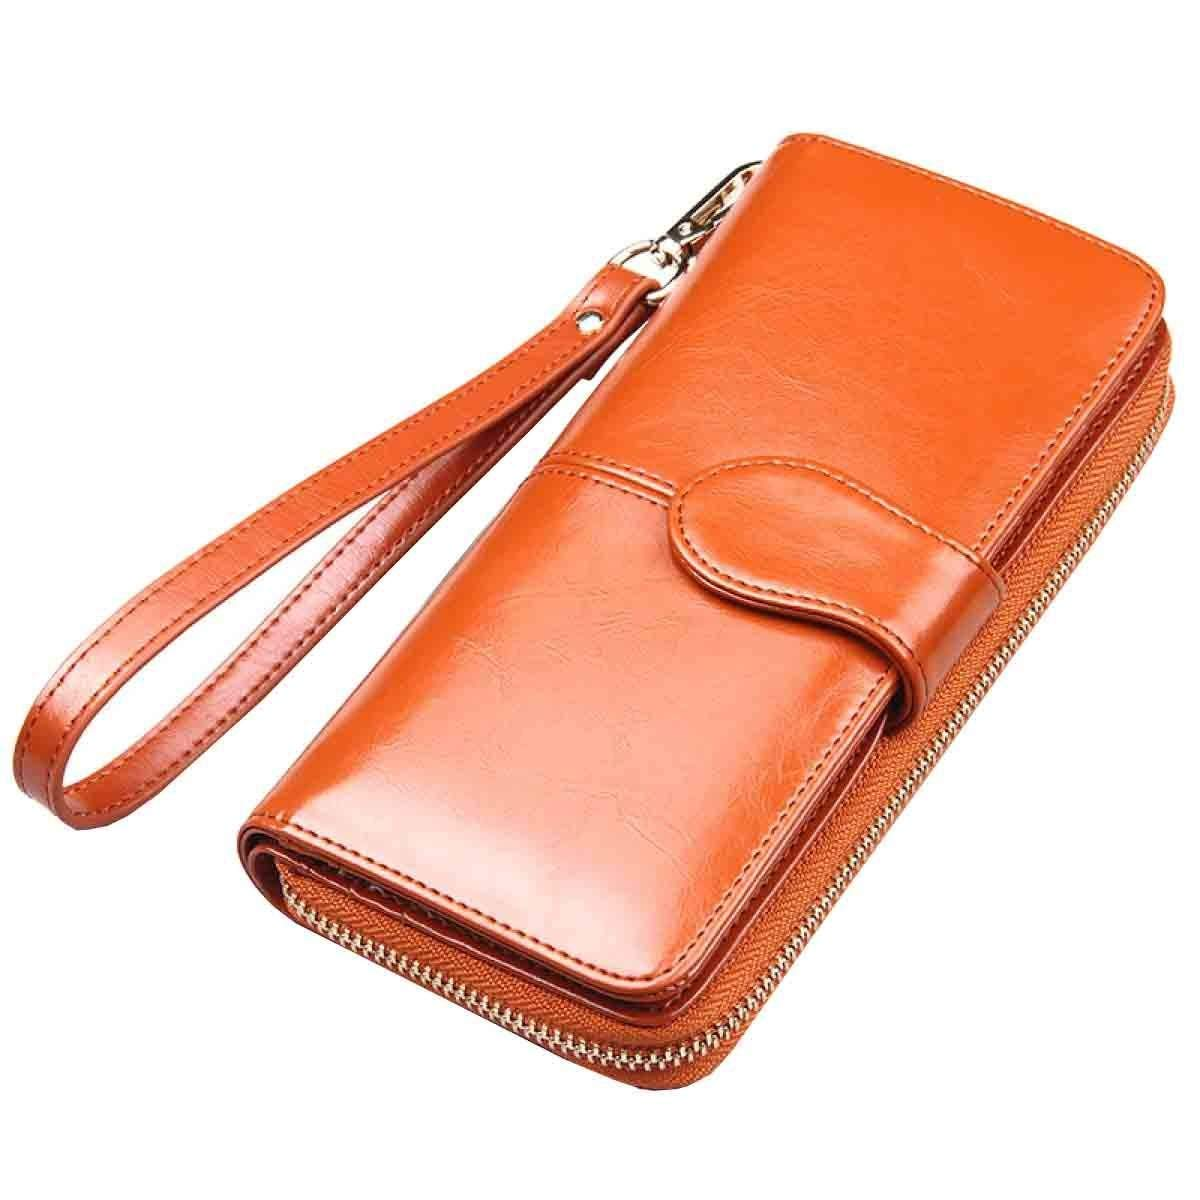 1 Cross Women Large Capacity Leather Zipper Wallet Purse Wristlet Handbag with Removable Wrist Strap for Work (color   5, Size   One Size)